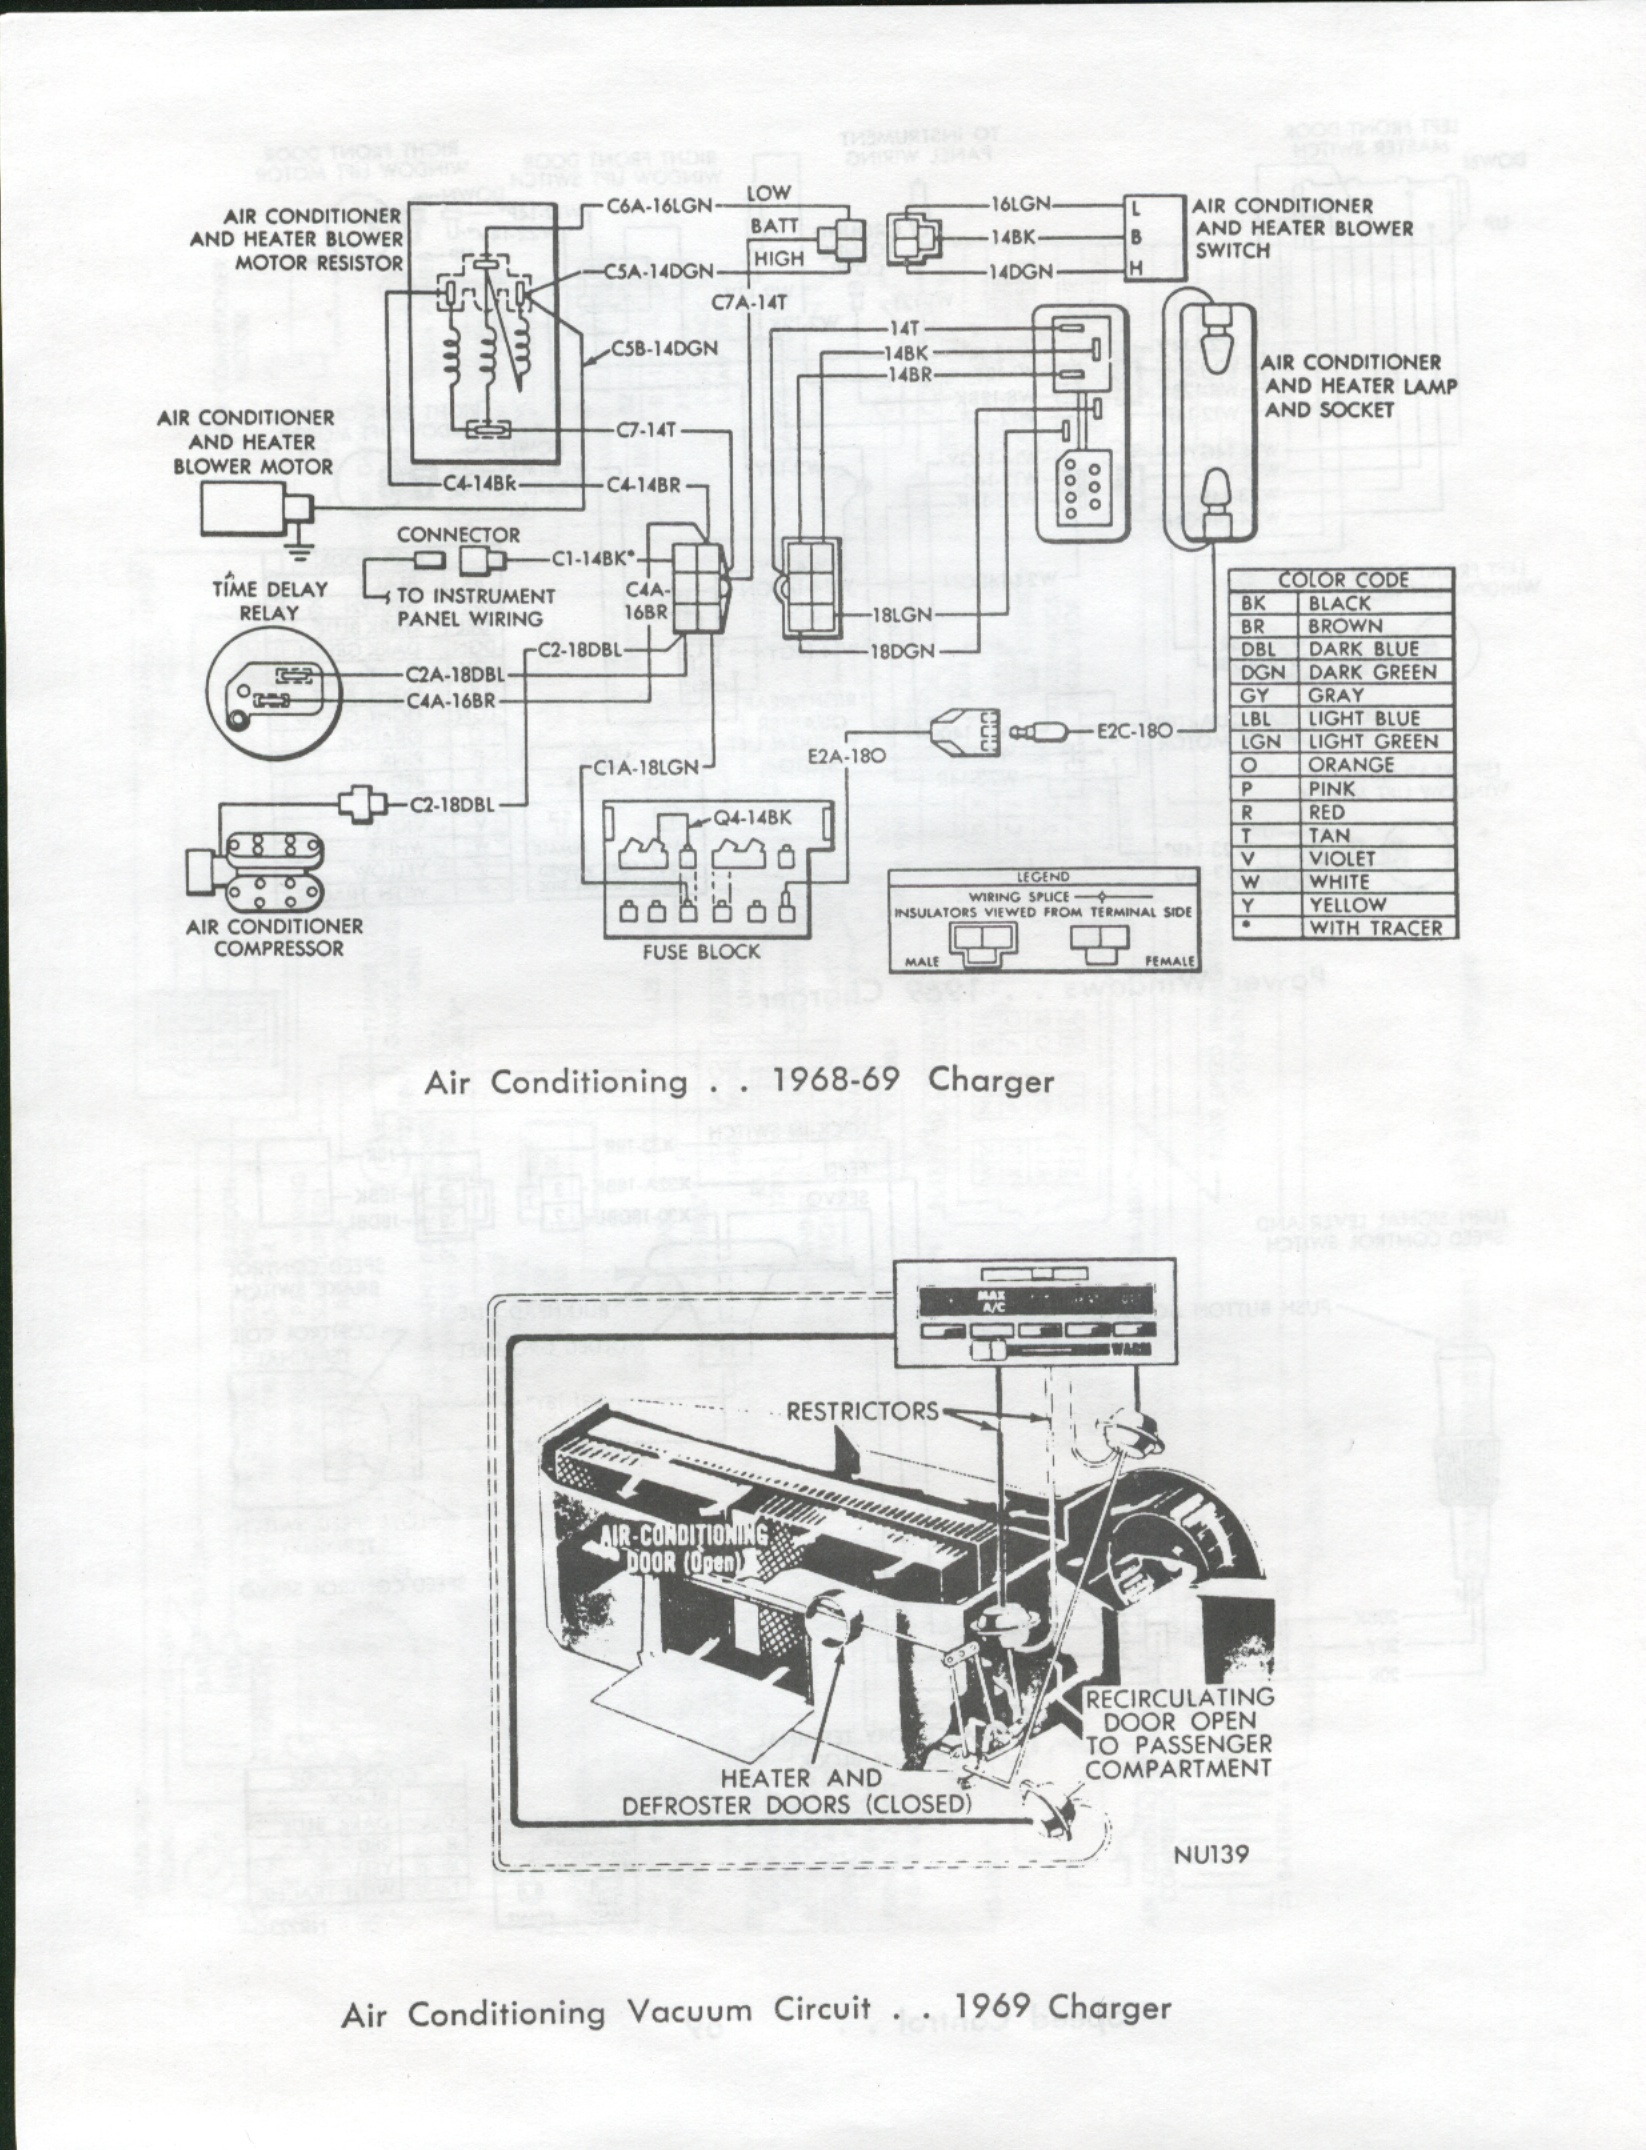 1968 Dodge Charger Ac Wiring Diagram Electrical Work Chevy Chevelle 1969 Rh Angelfire Com 1974